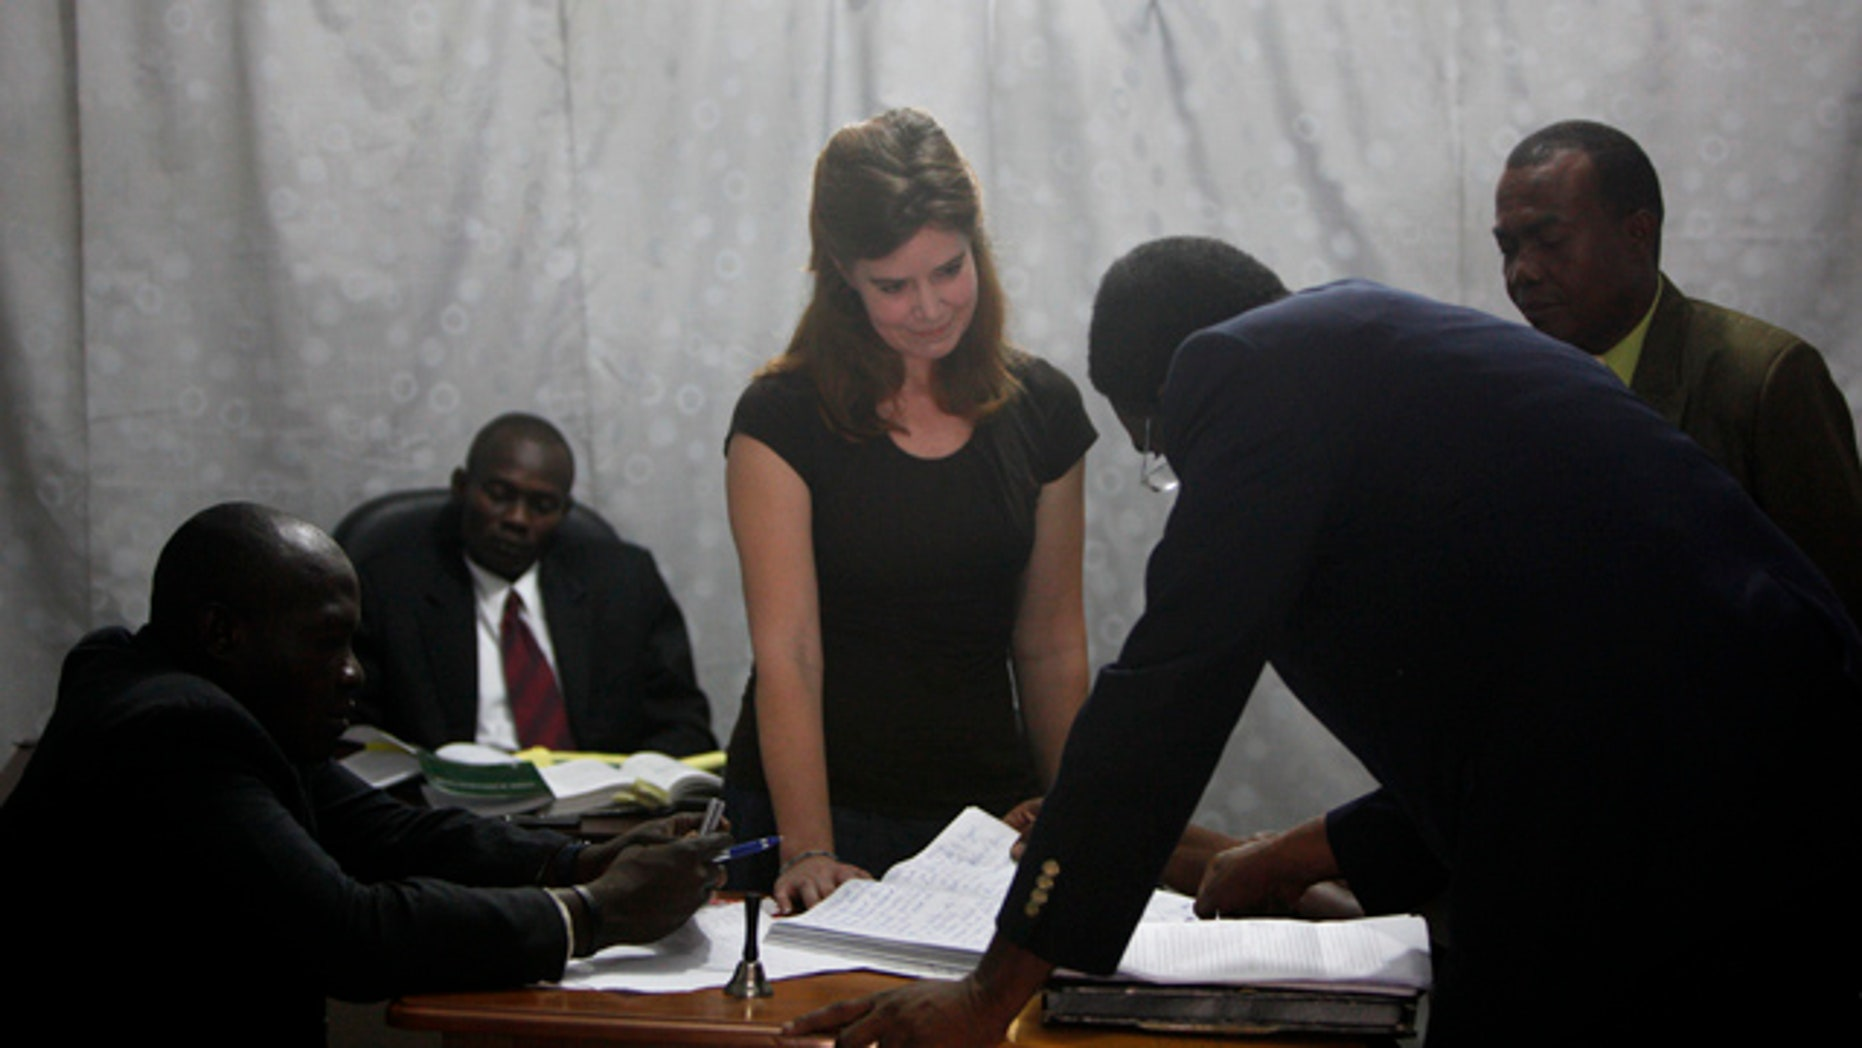 May 13: U.S. missionary Laura Silsby, center, appears in a Port-au-Prince courthouse on the first day of her trial.